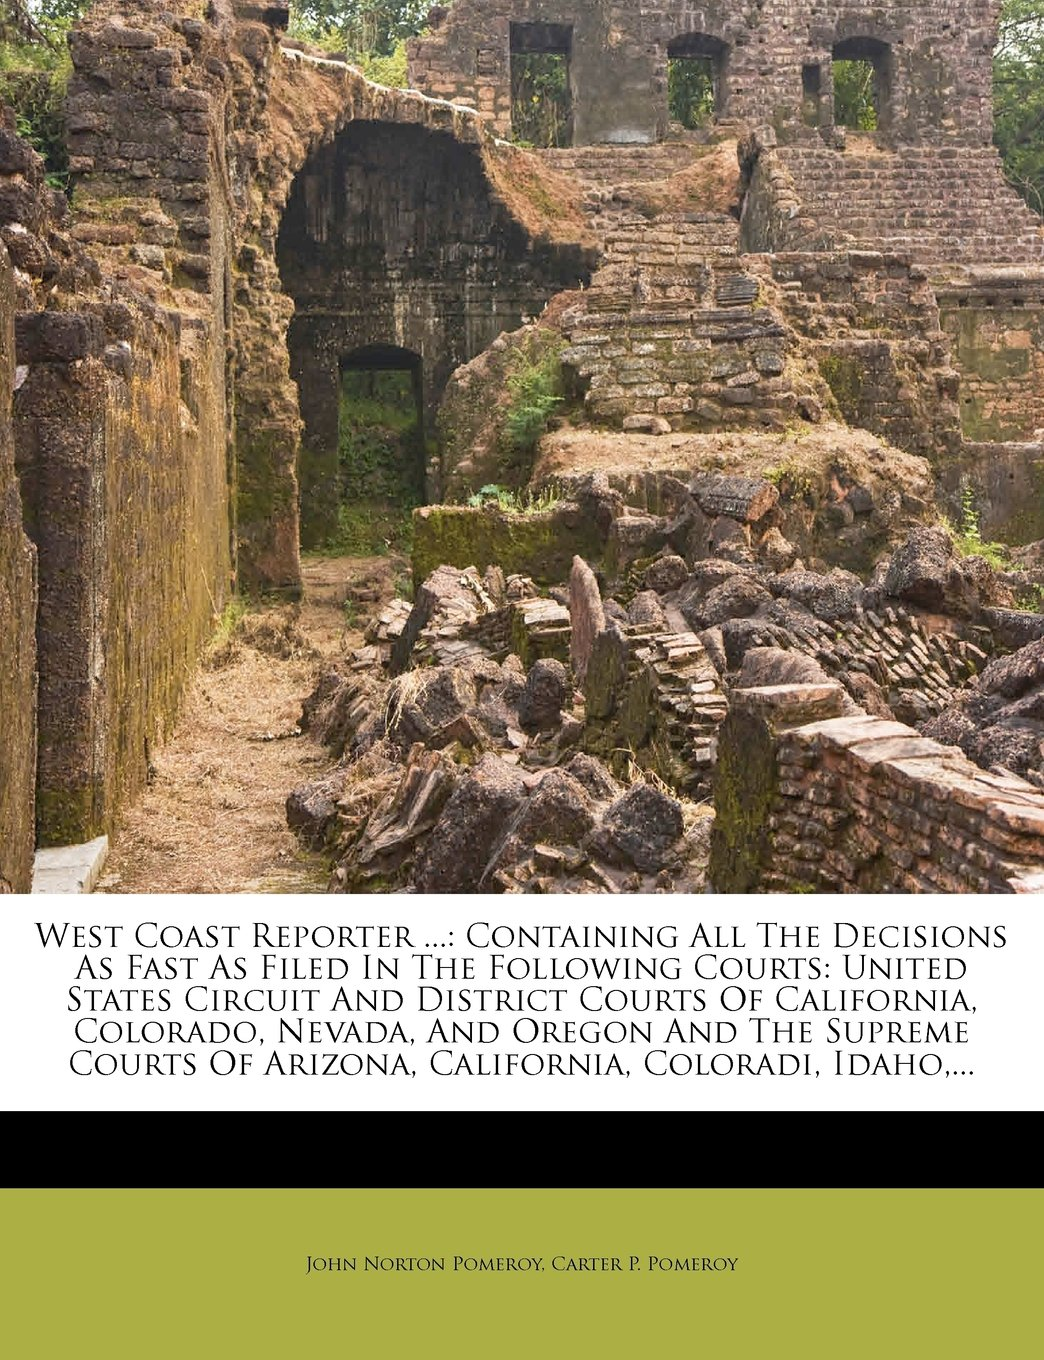 Download West Coast Reporter ...: Containing All The Decisions As Fast As Filed In The Following Courts: United States Circuit And District Courts Of ... Of Arizona, California, Coloradi, Idaho,... PDF